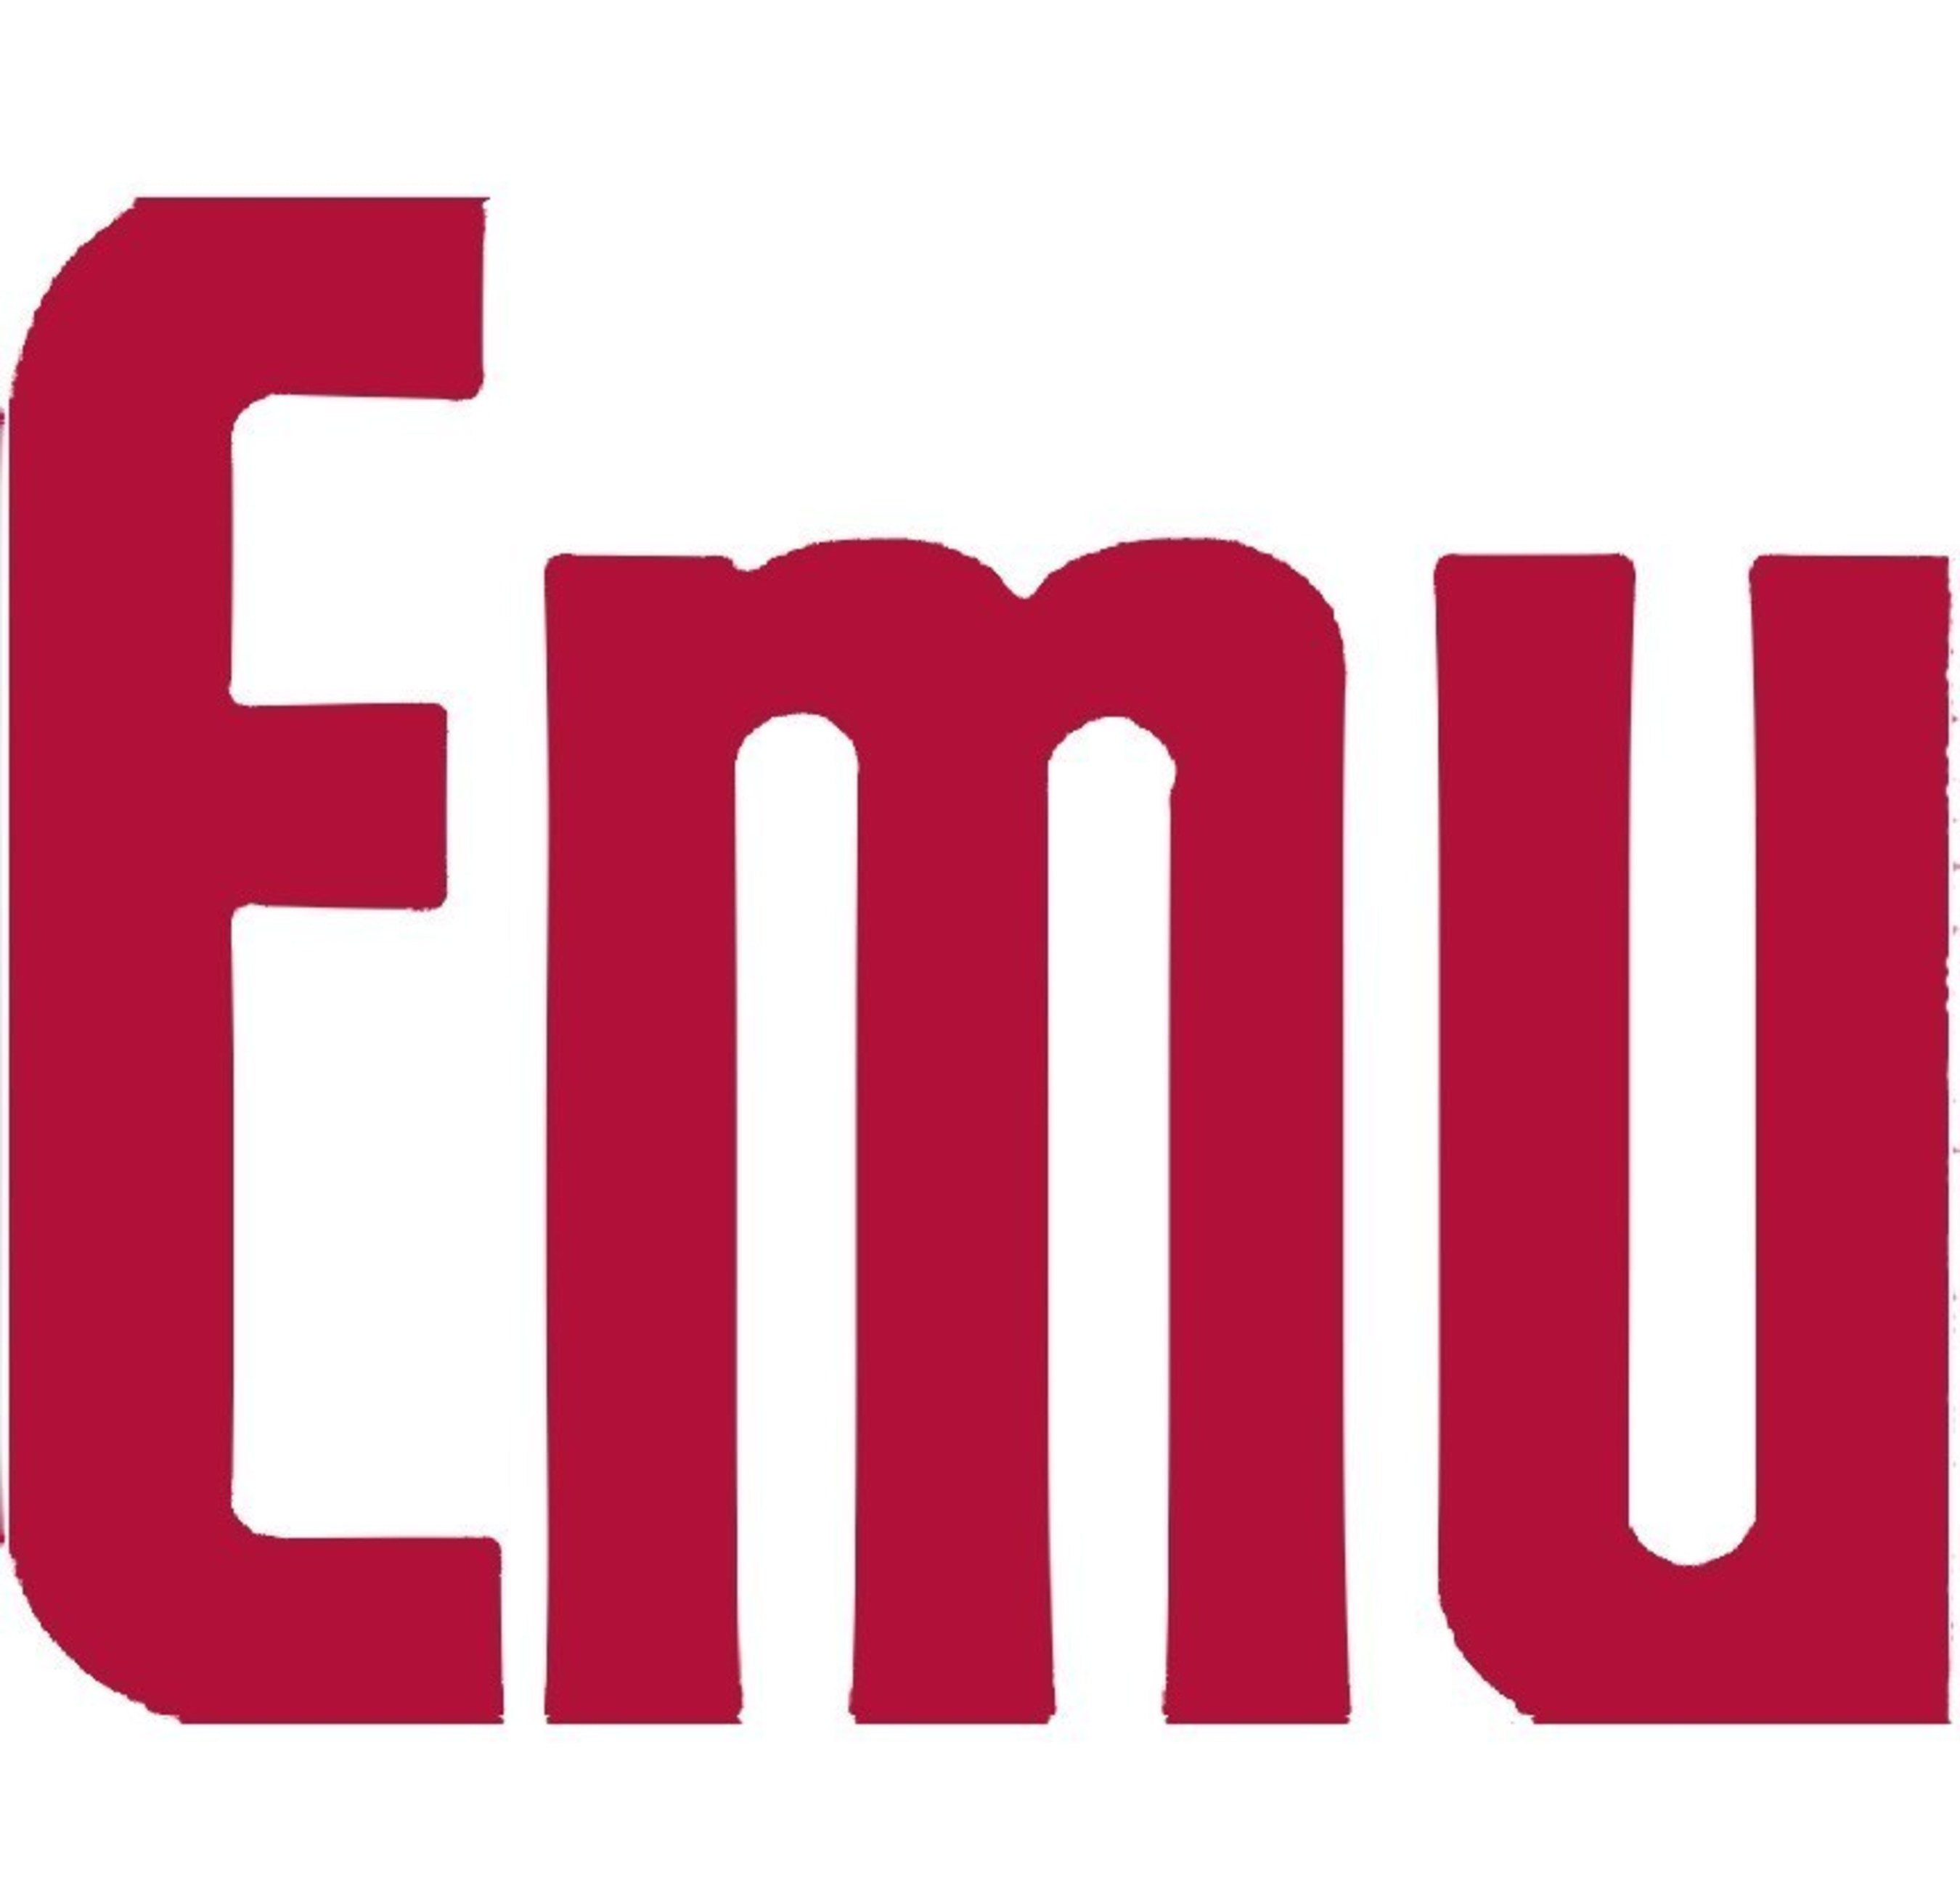 Emu Technology provides a quantum leap in performance for 'Big Data'